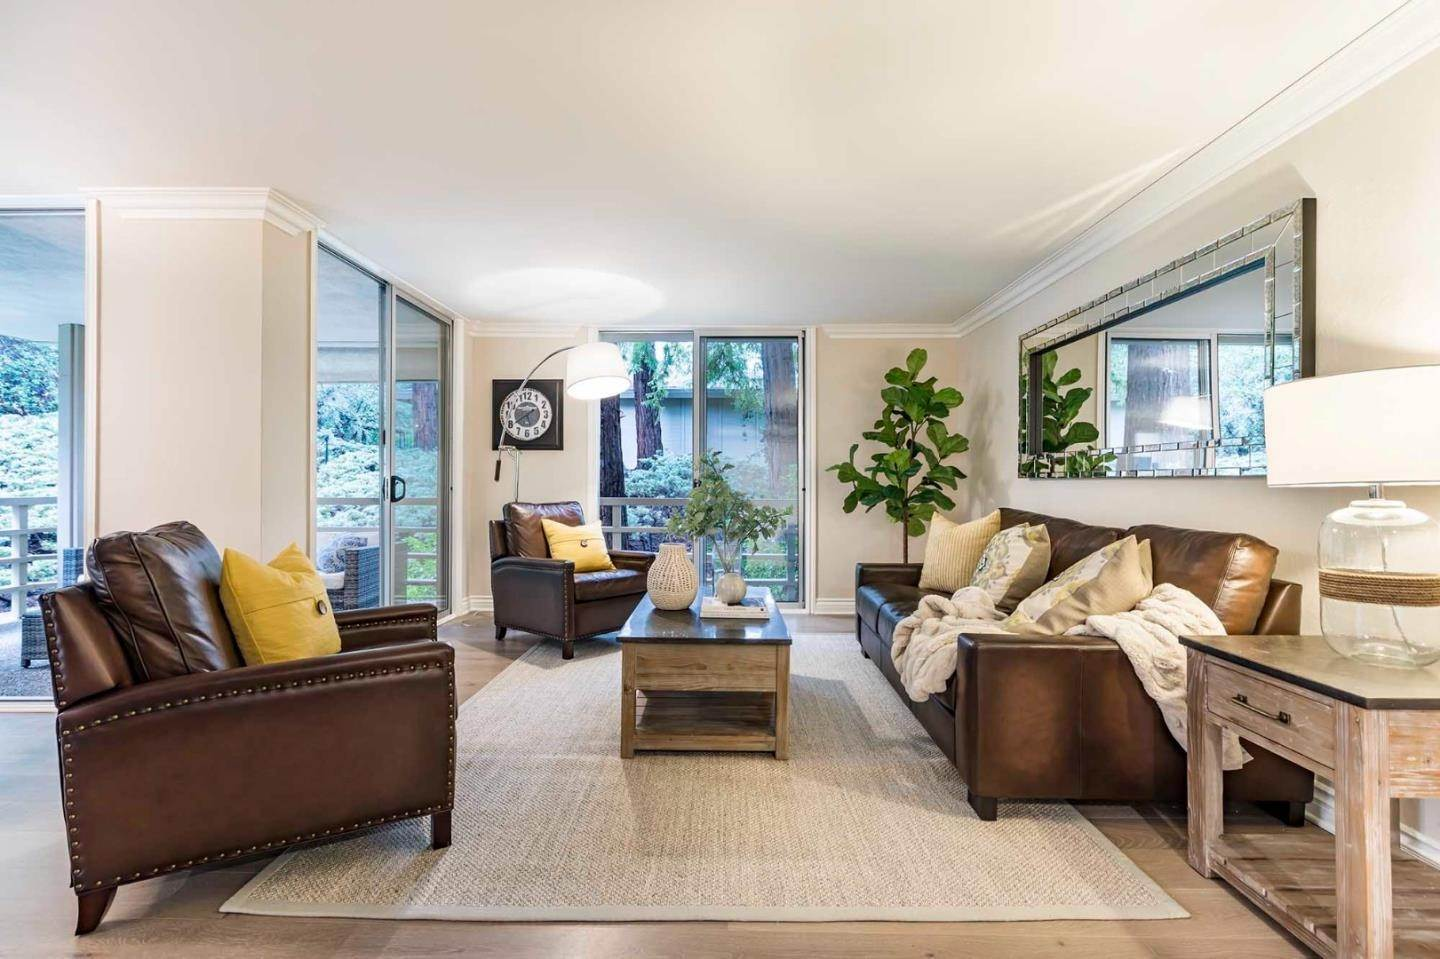 Condominiums for Sale at 1100 Sharon Park Drive Menlo Park, California 94025 United States